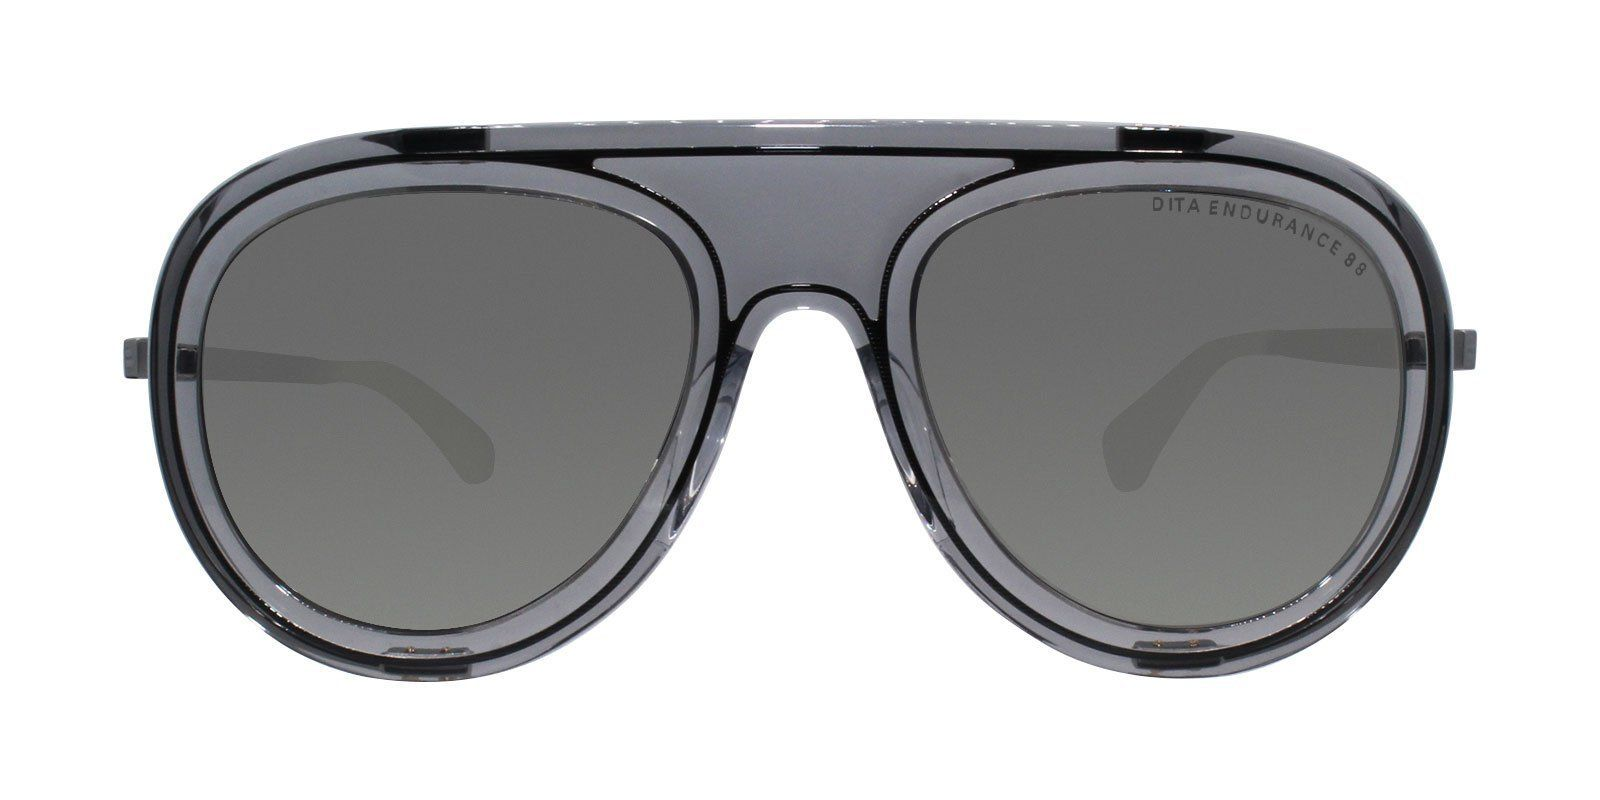 6349a1de0da1 Dita - Endurance 88 Gray - Gray sunglasses in 2018